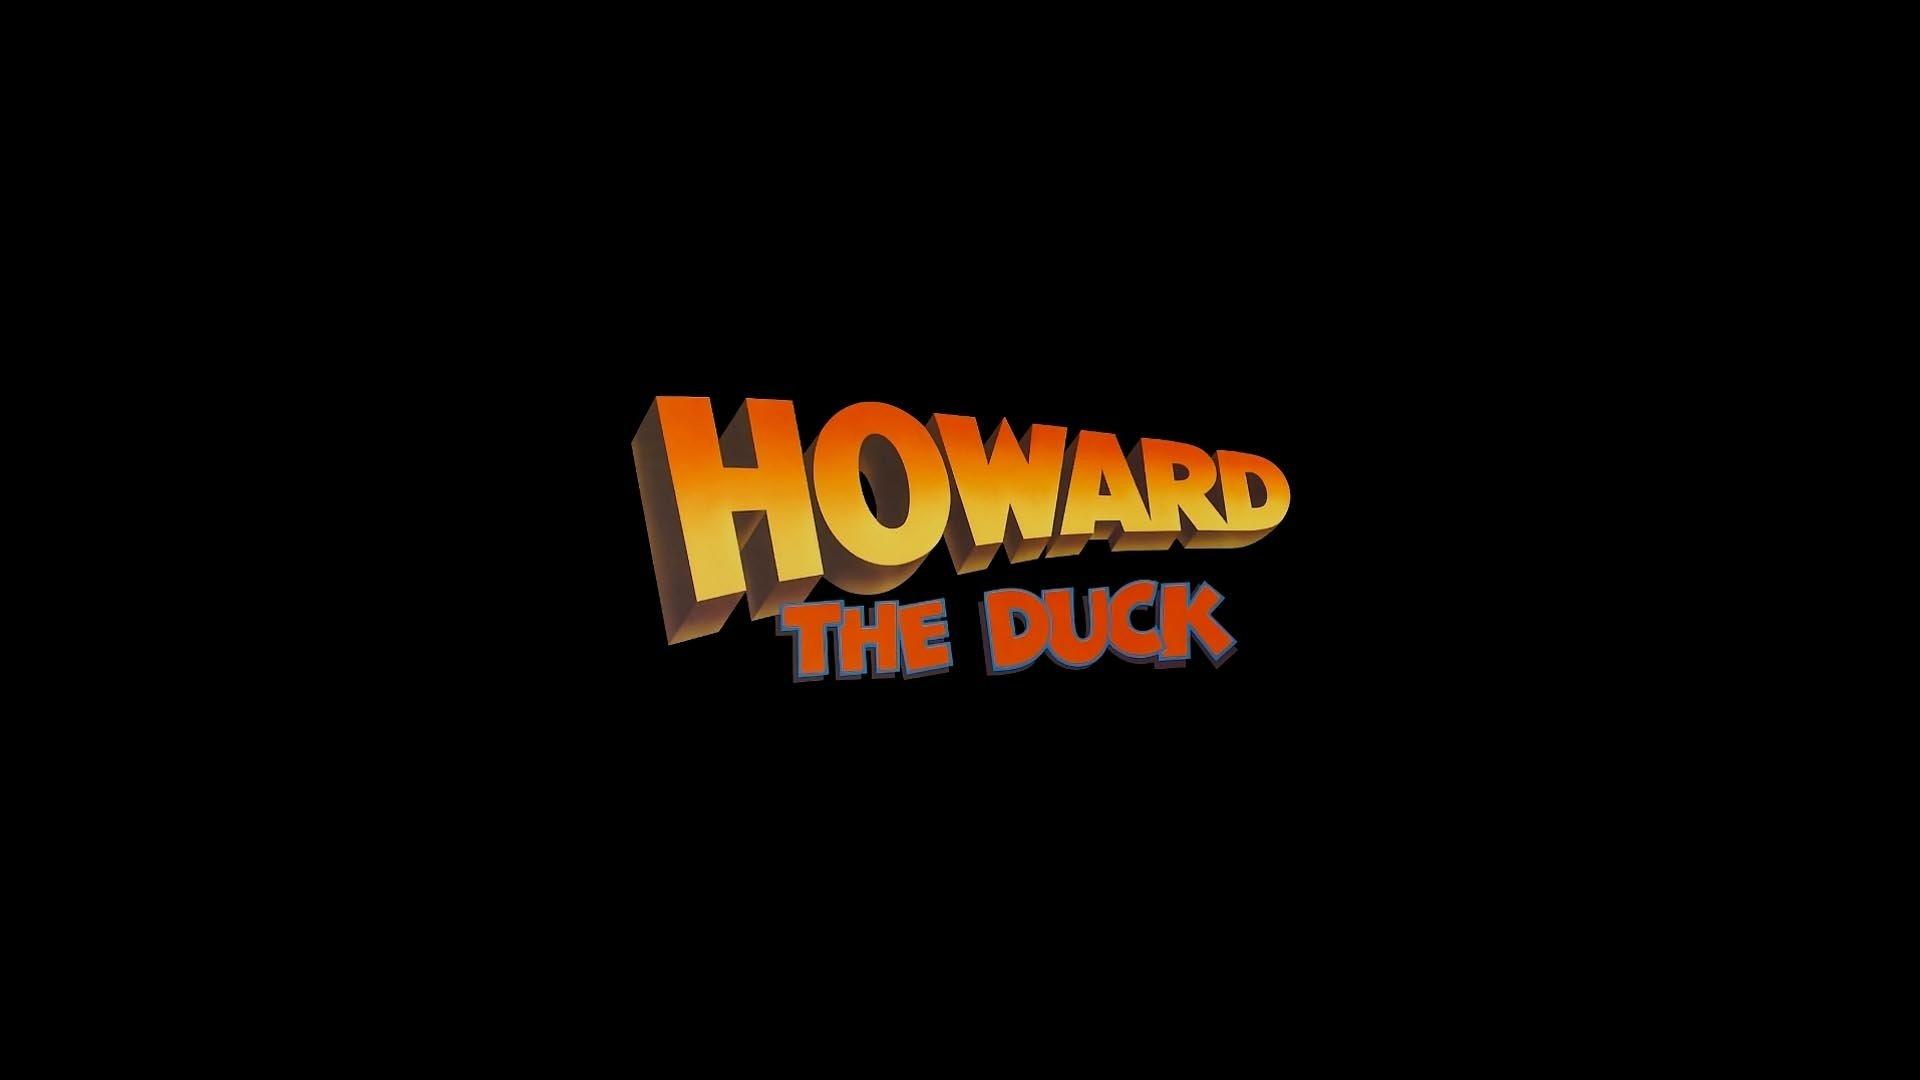 Howard The Duck HD Wallpapers